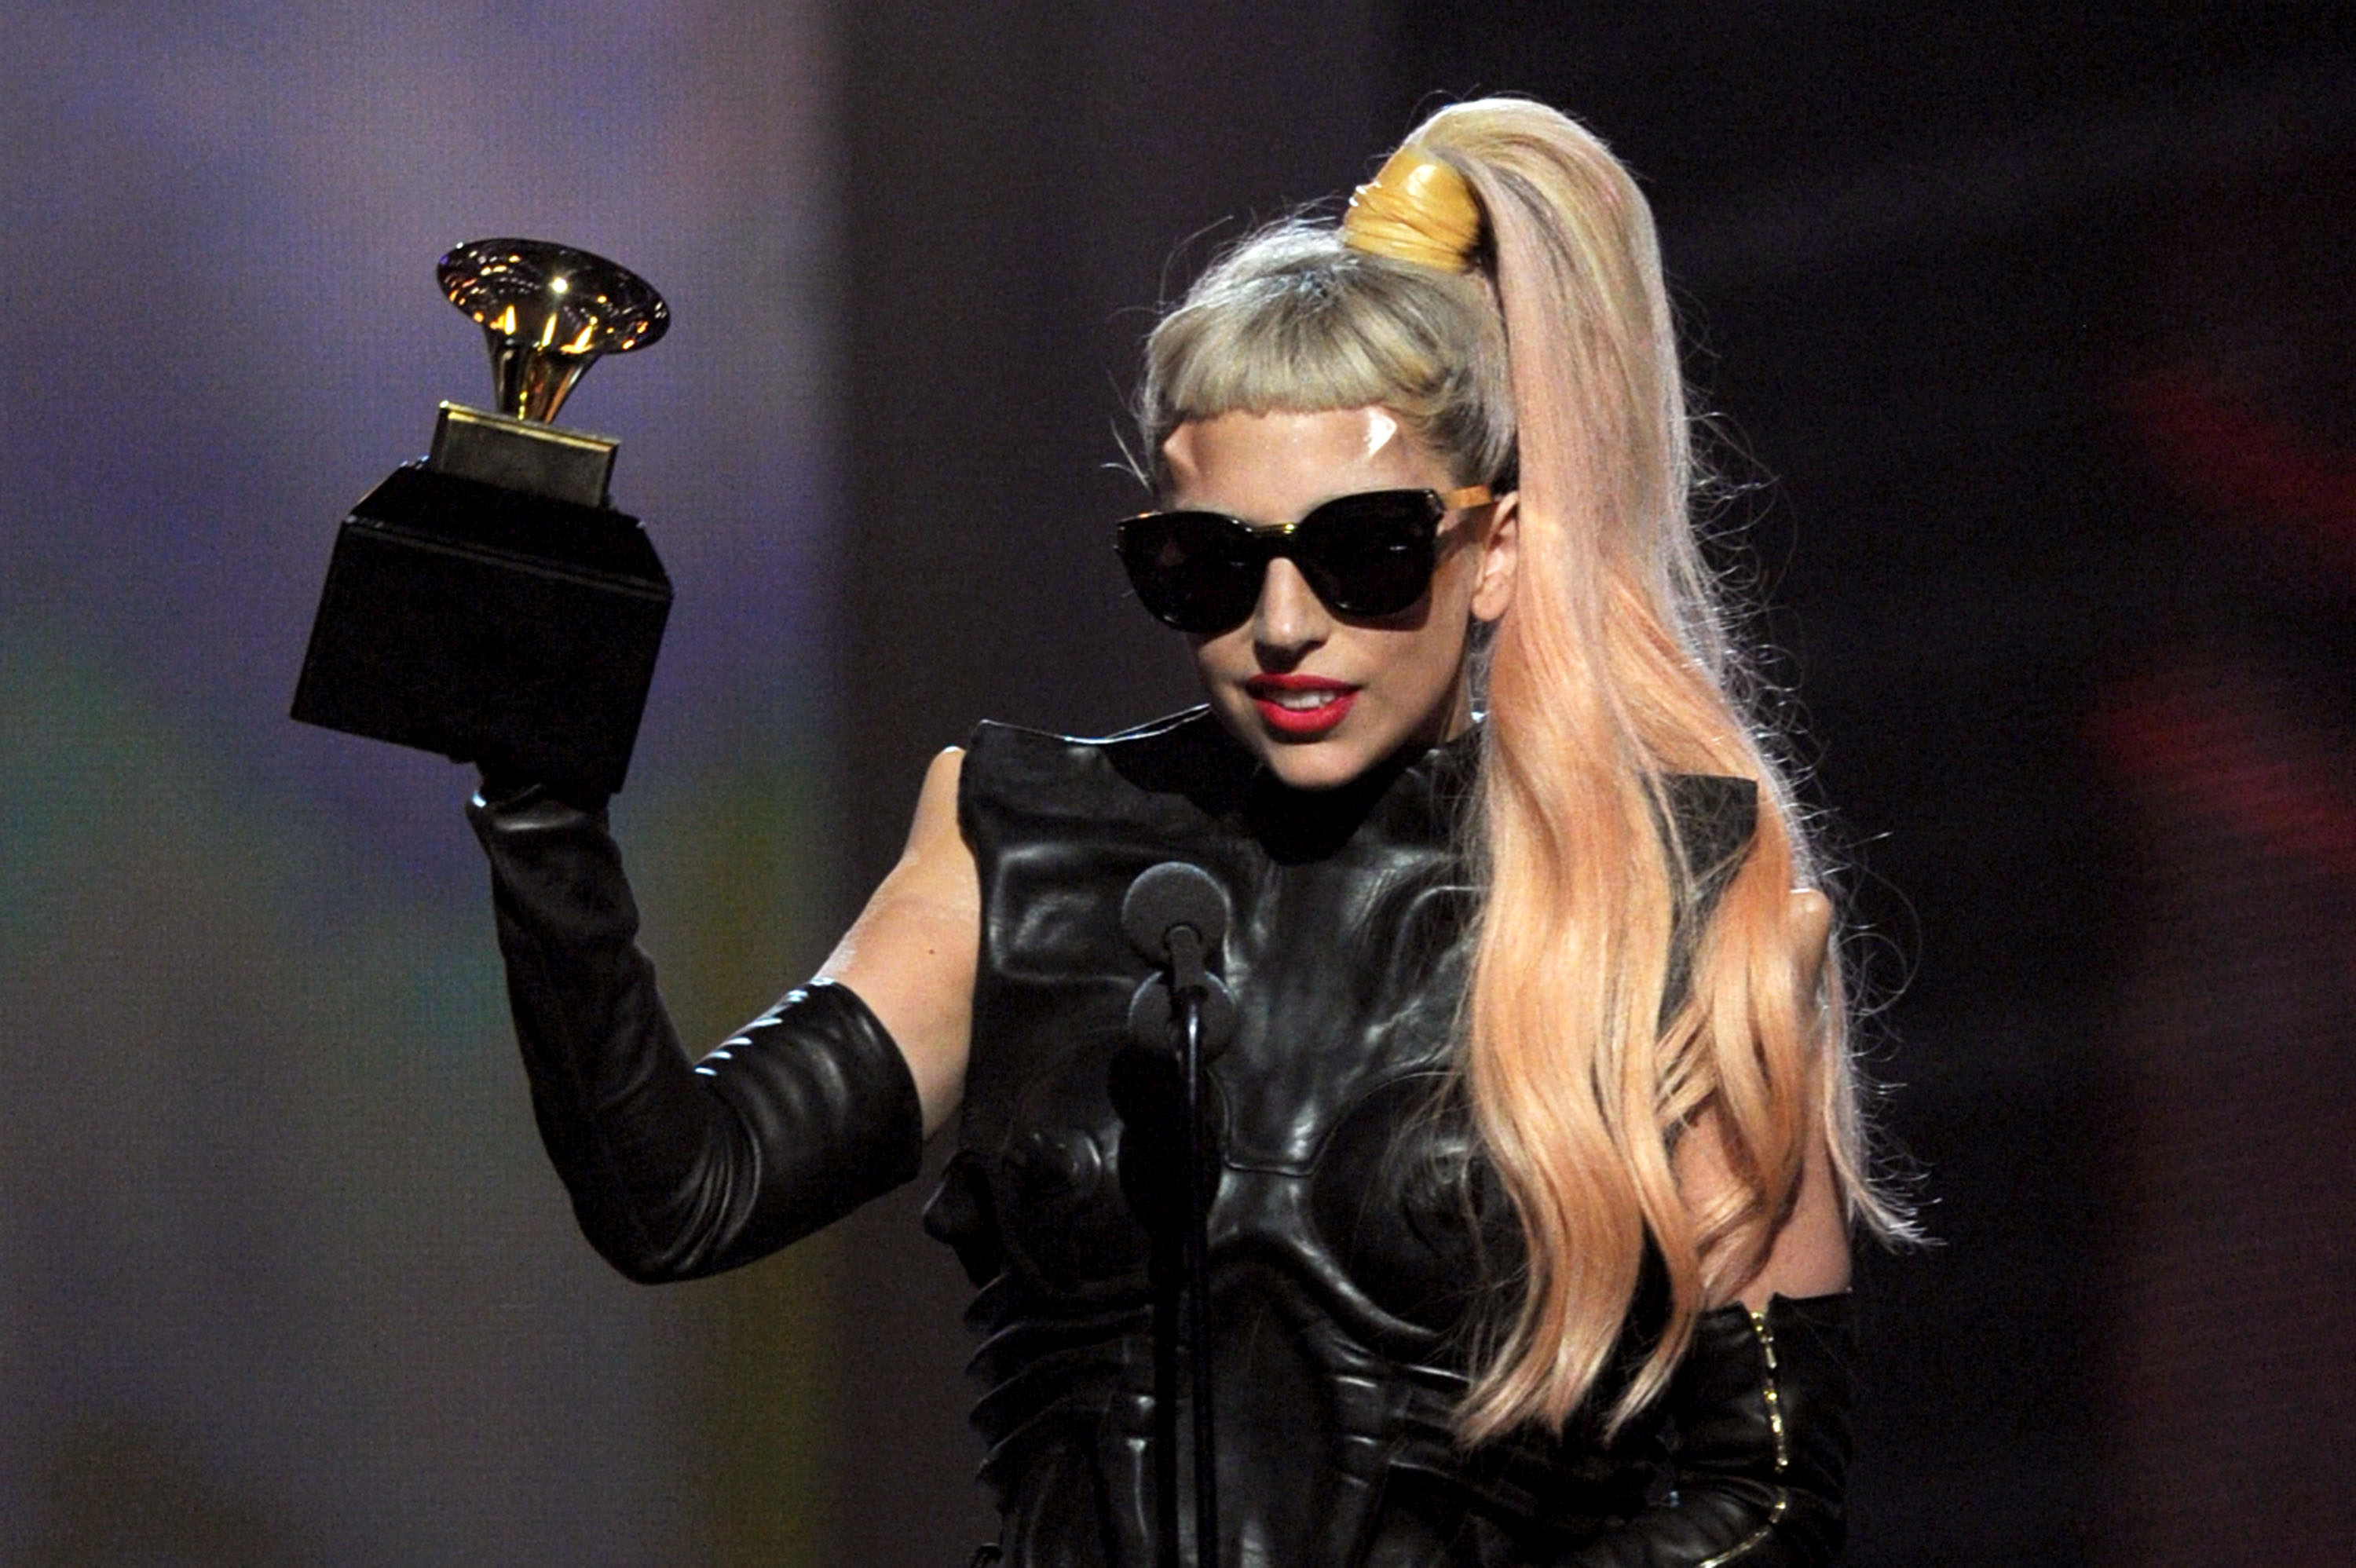 Lady Gaga Grammys: Pictures Of The 2011 Grammys Show With Gwyneth Paltrow